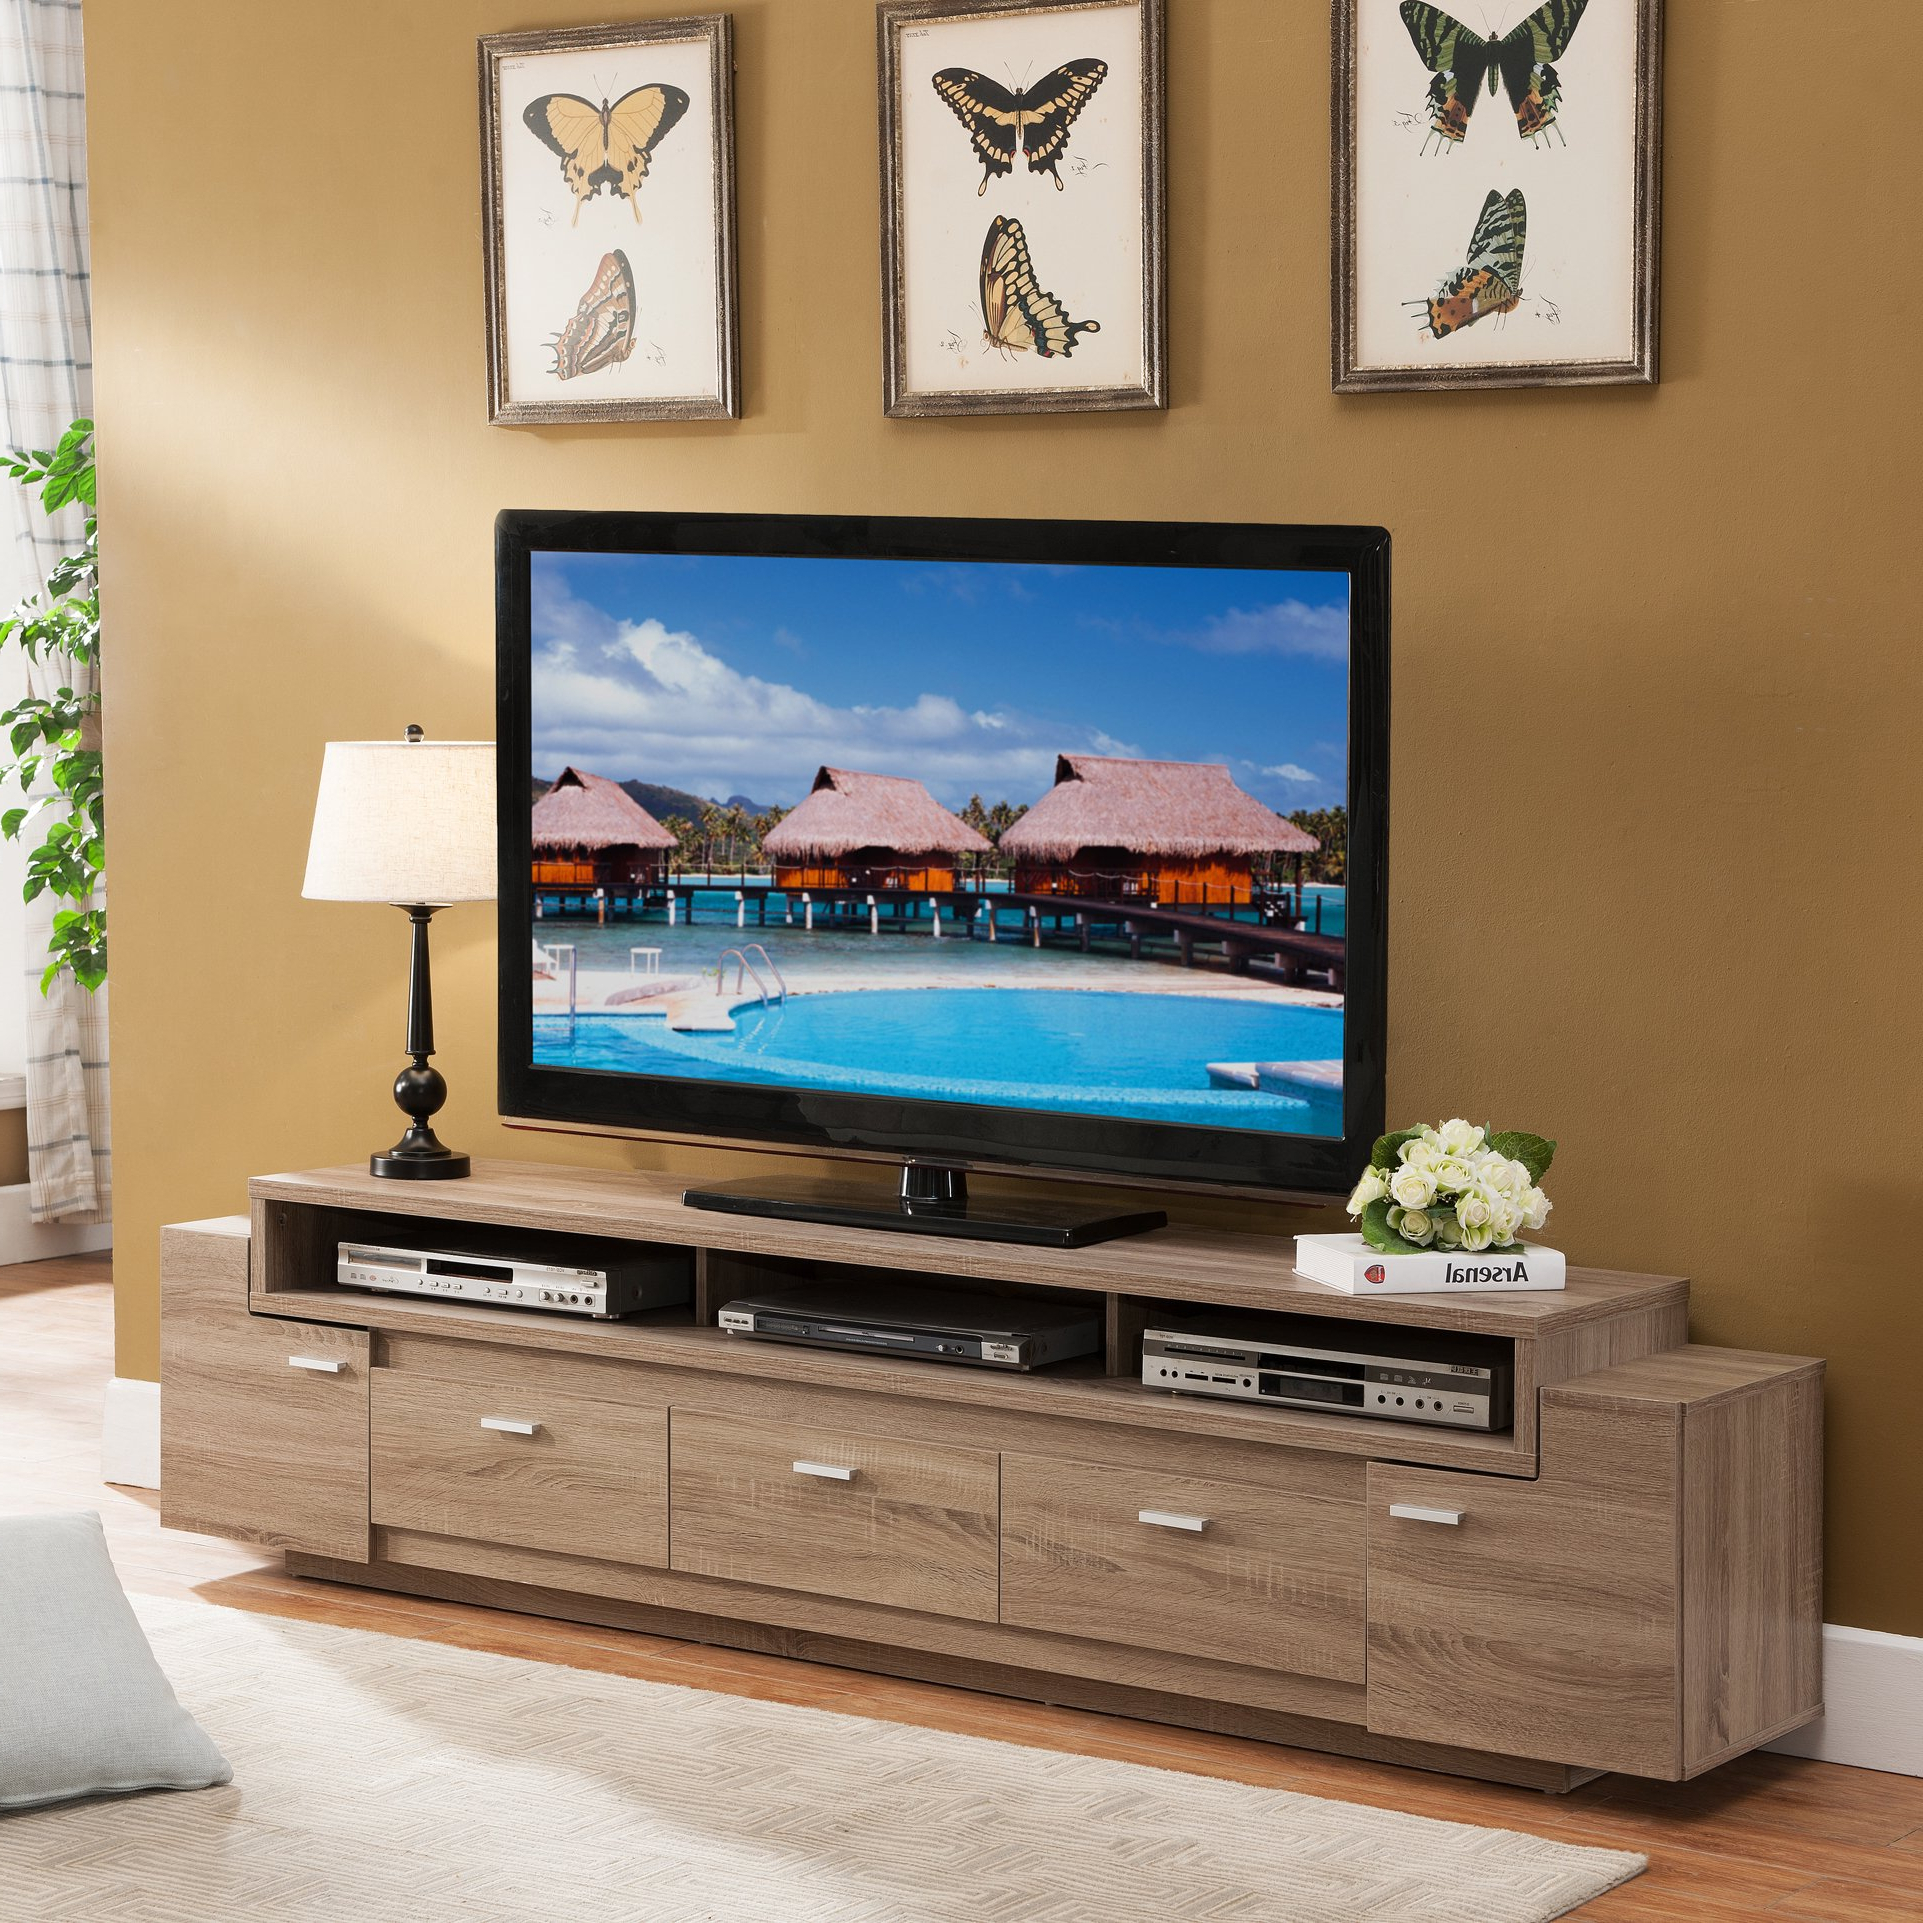 84 Inch Tv Stands Pertaining To Latest Shop Porch & Den Hubbard 84 Inch Tiered Tv Stand – On Sale – Free (View 11 of 20)